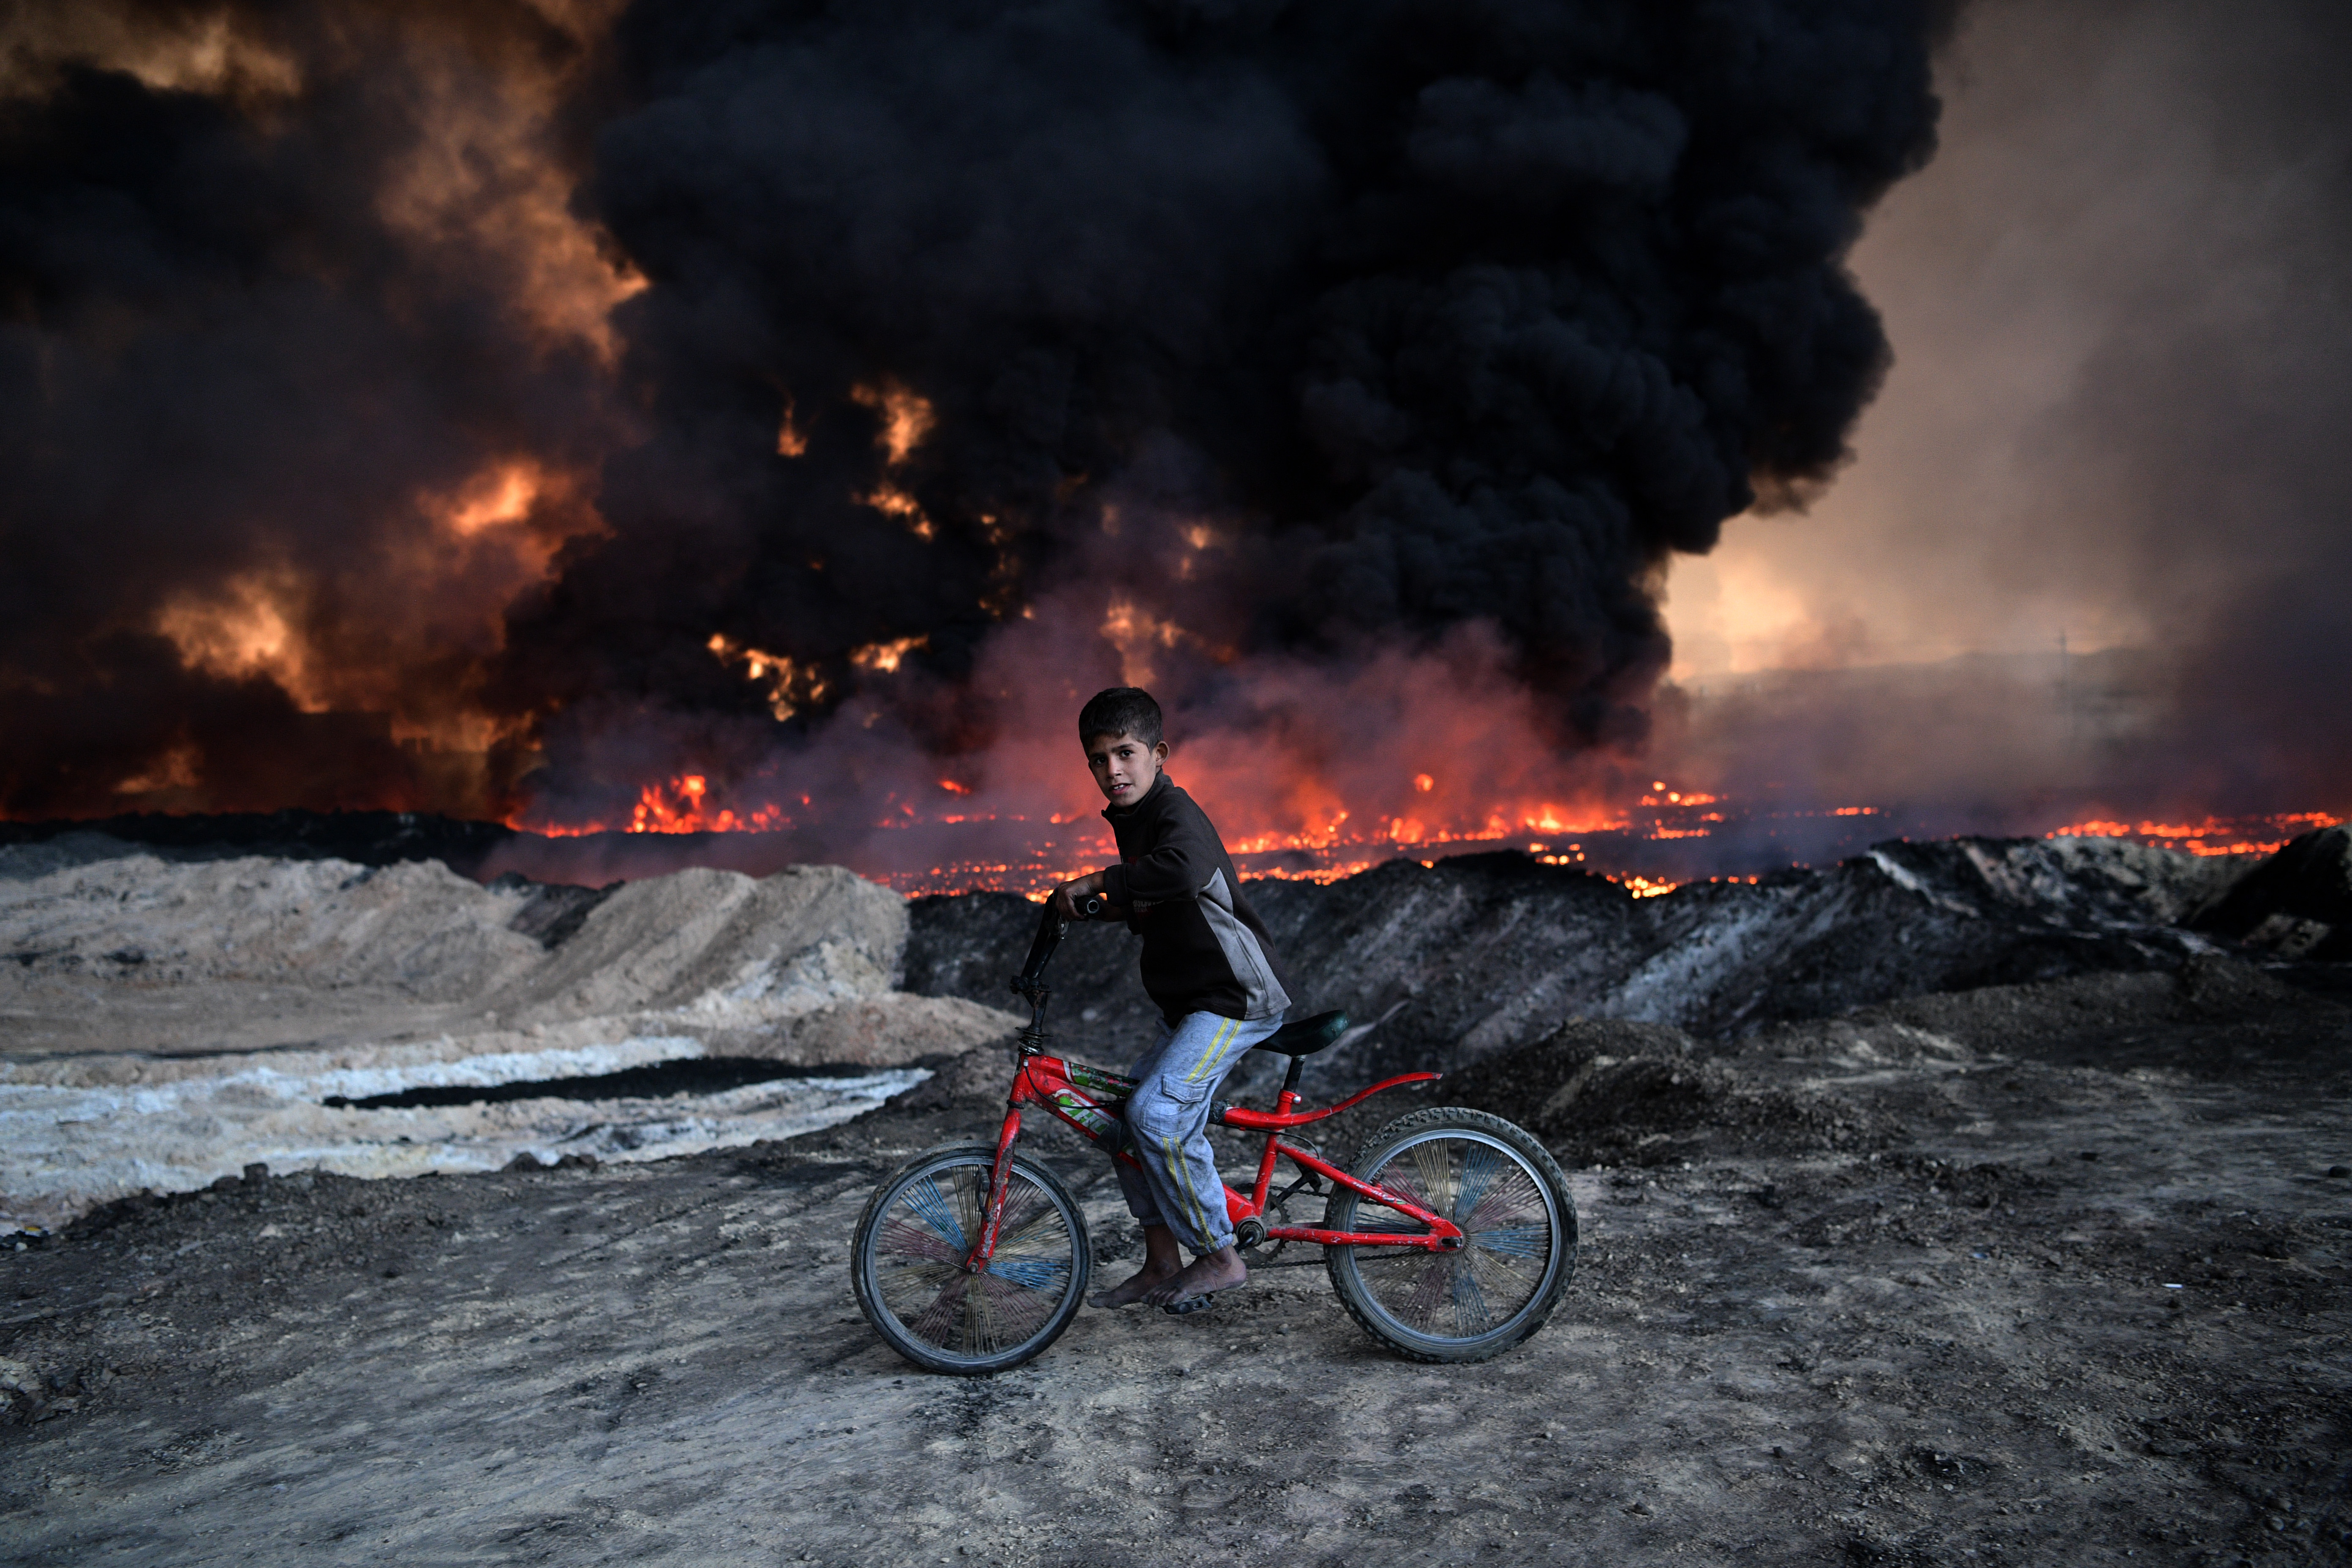 An Iraqi boy passes an oil field that was set on fire by retreating ISIS extremists ahead of the Mosul offensive in Qayyarah, Iraq, on Oct. 21. Several hundred Iraqi families have been made to leave their homes for Mosul by Islamic State fighters as the UN warns they could be used as human shields. (Carl Court/Getty Images)